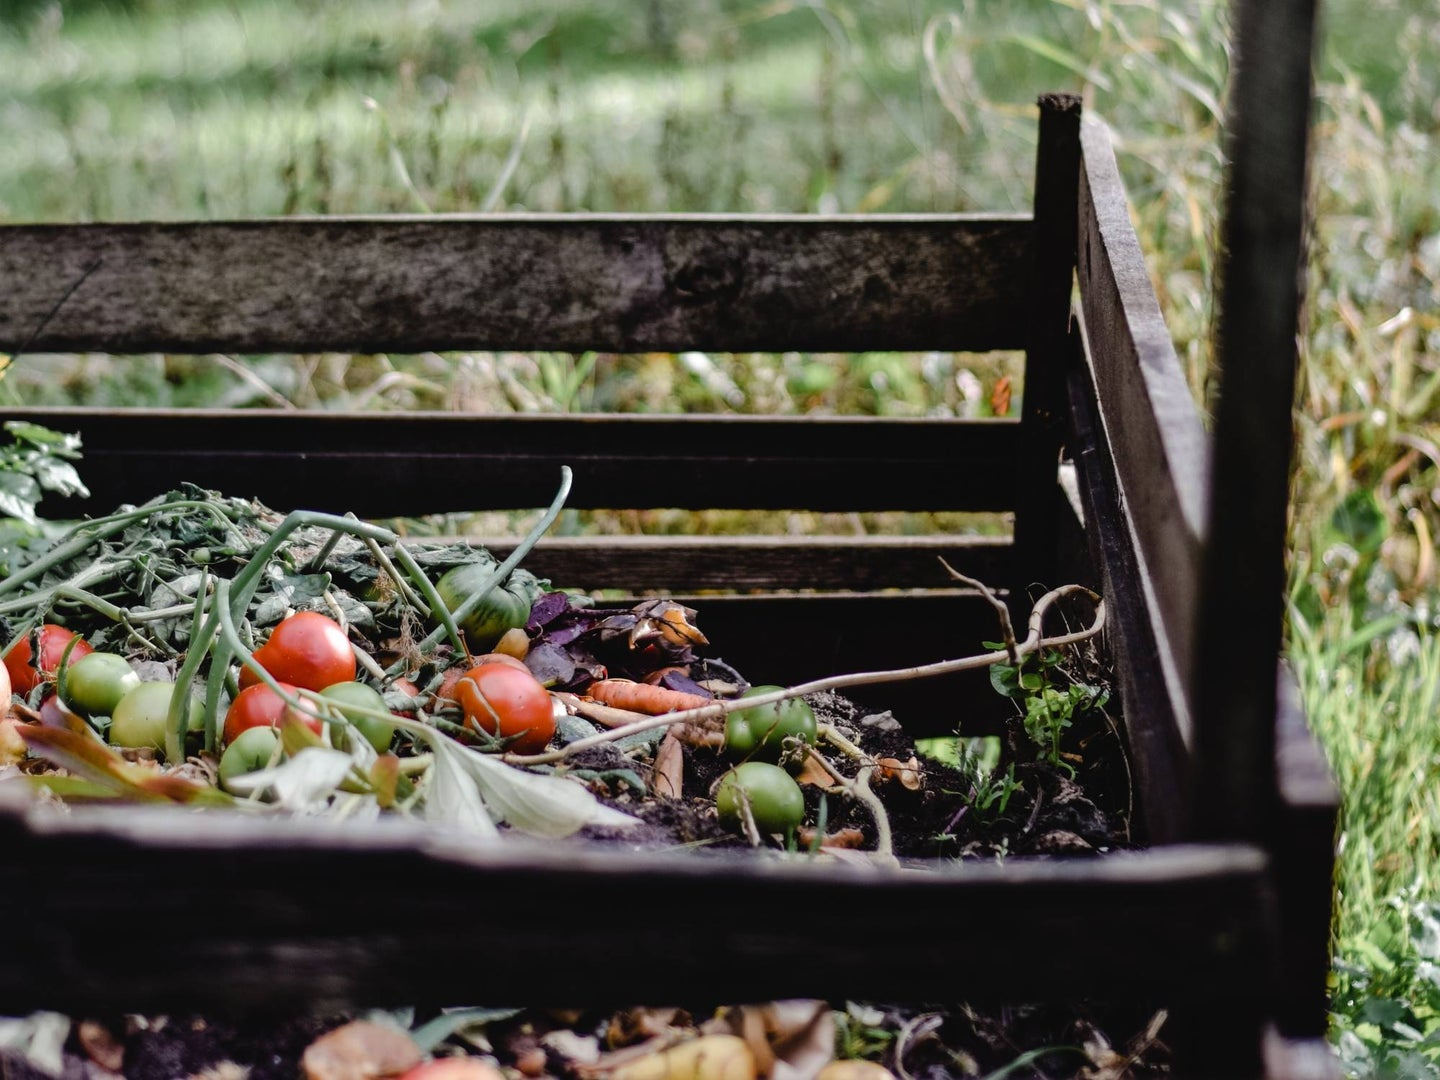 outdoors compositing pile with veggies